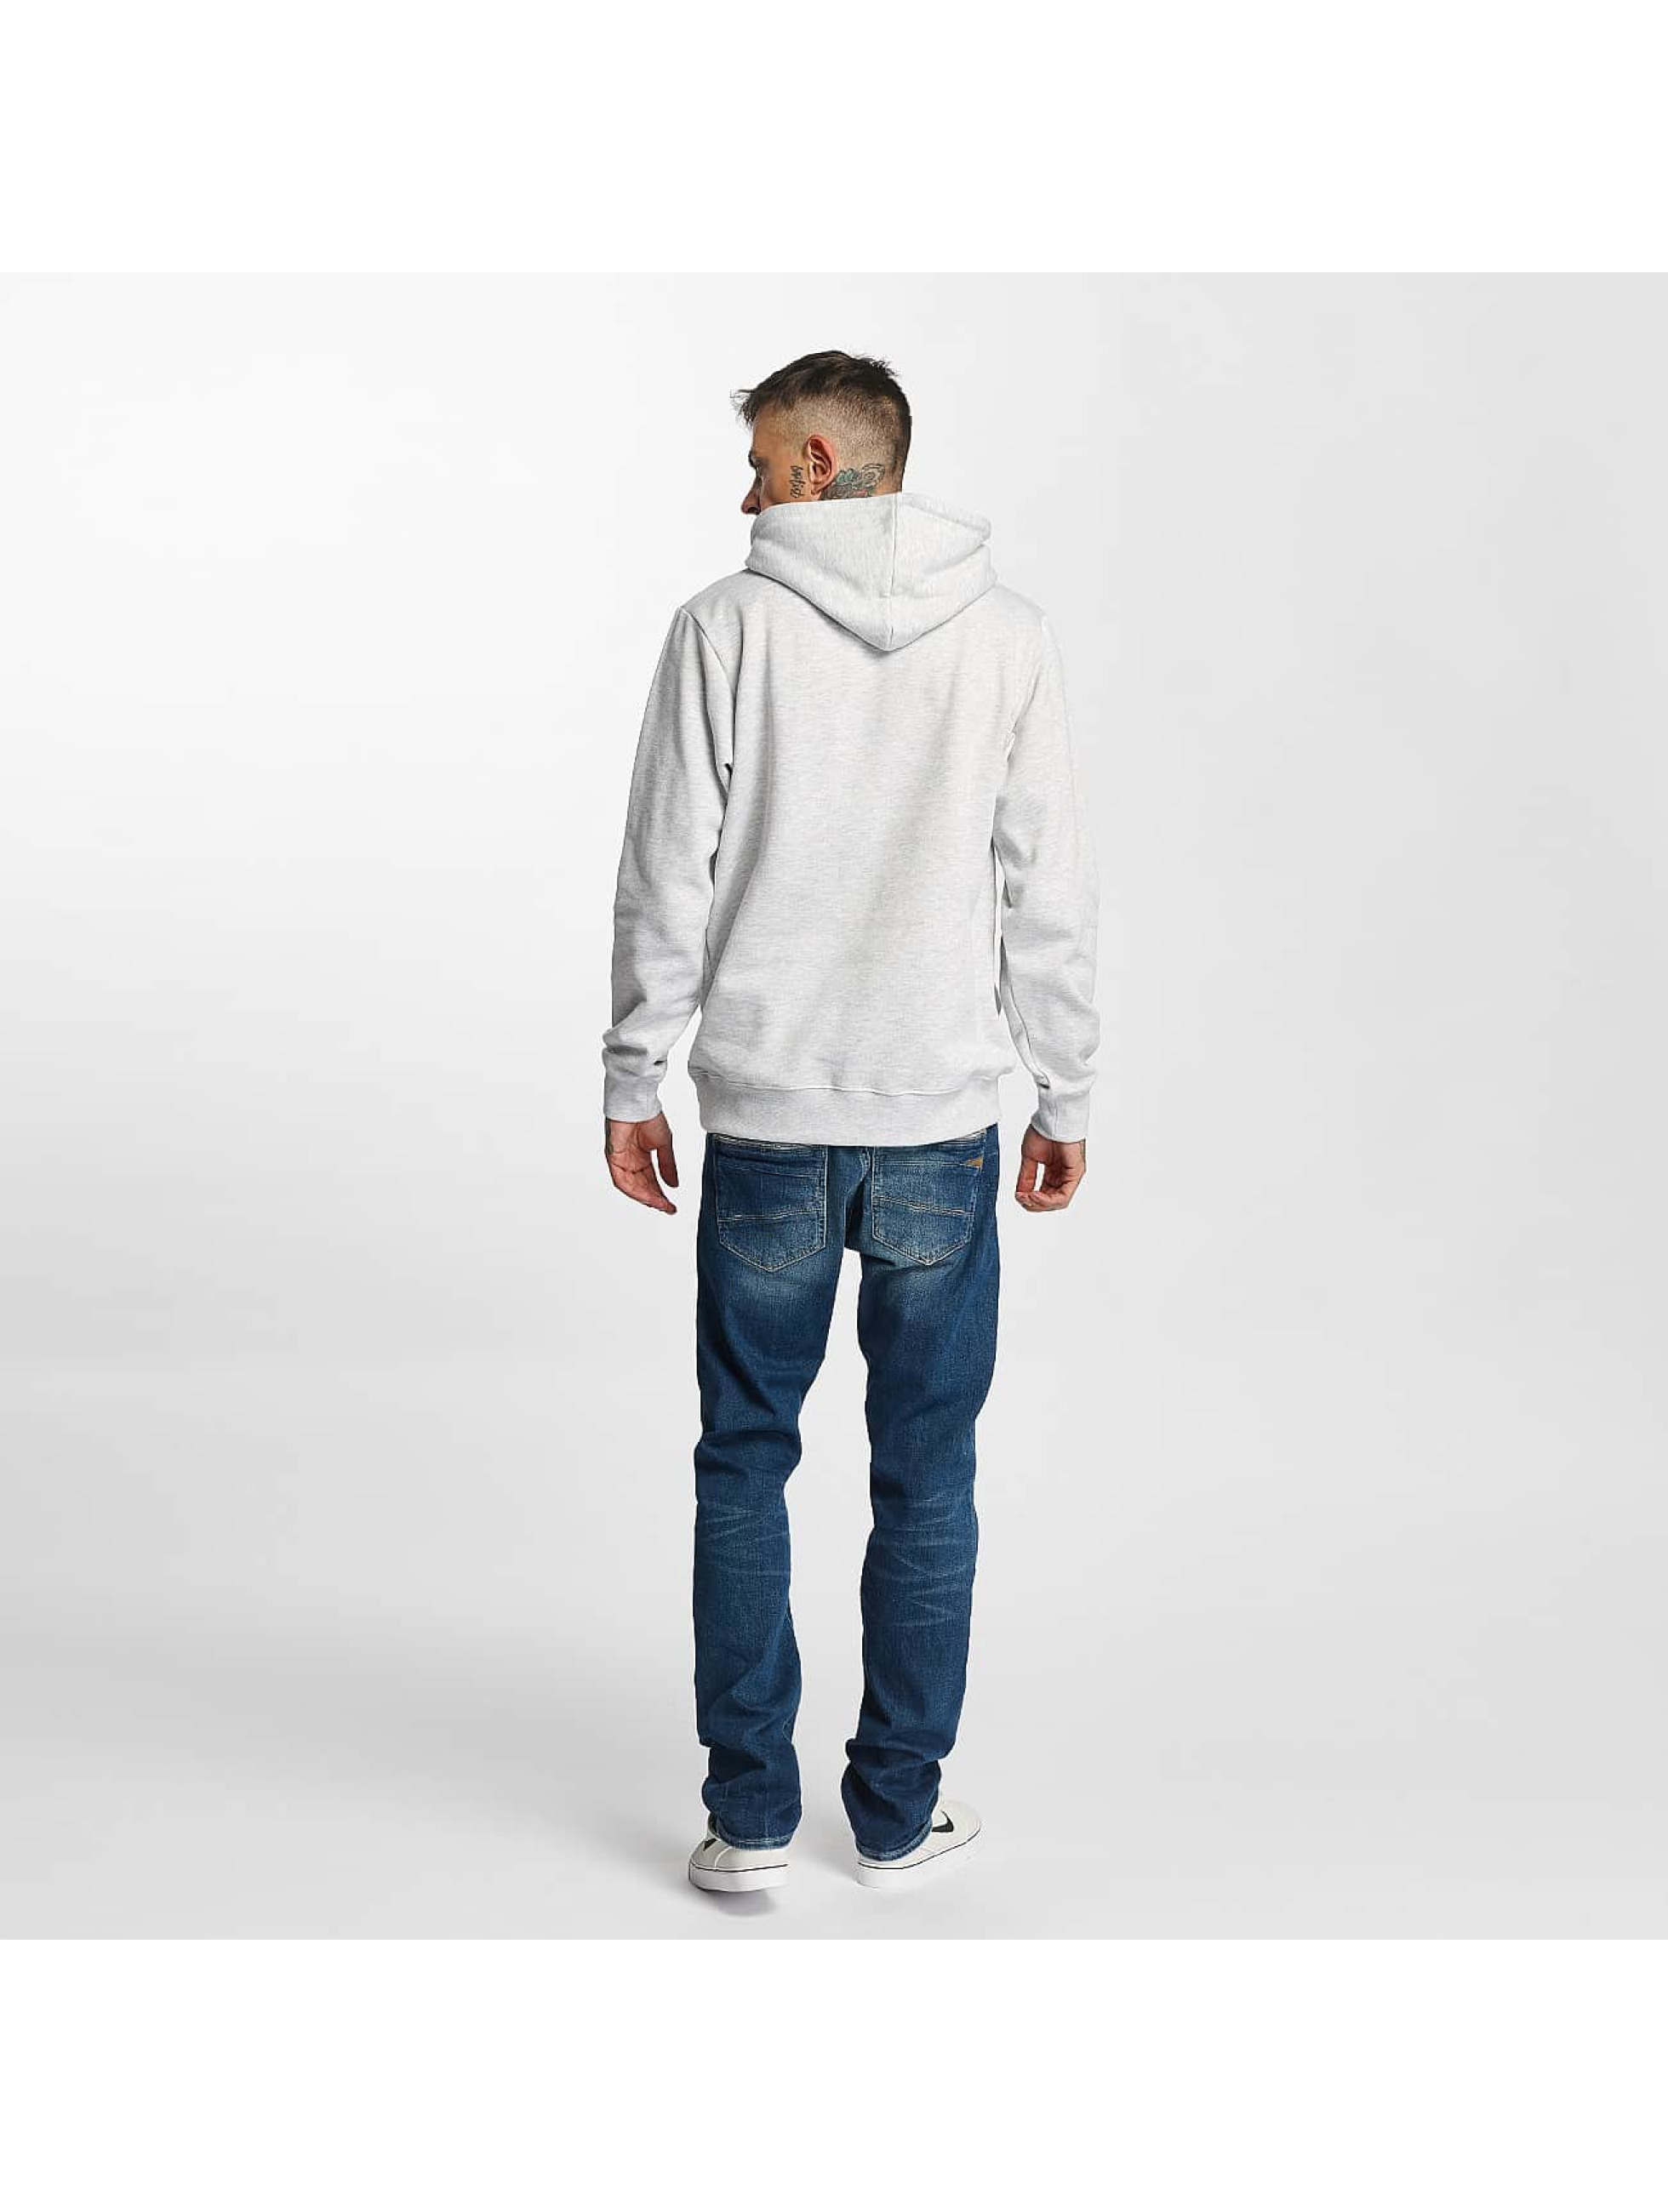 Tealer Hoody Glitch Color grau